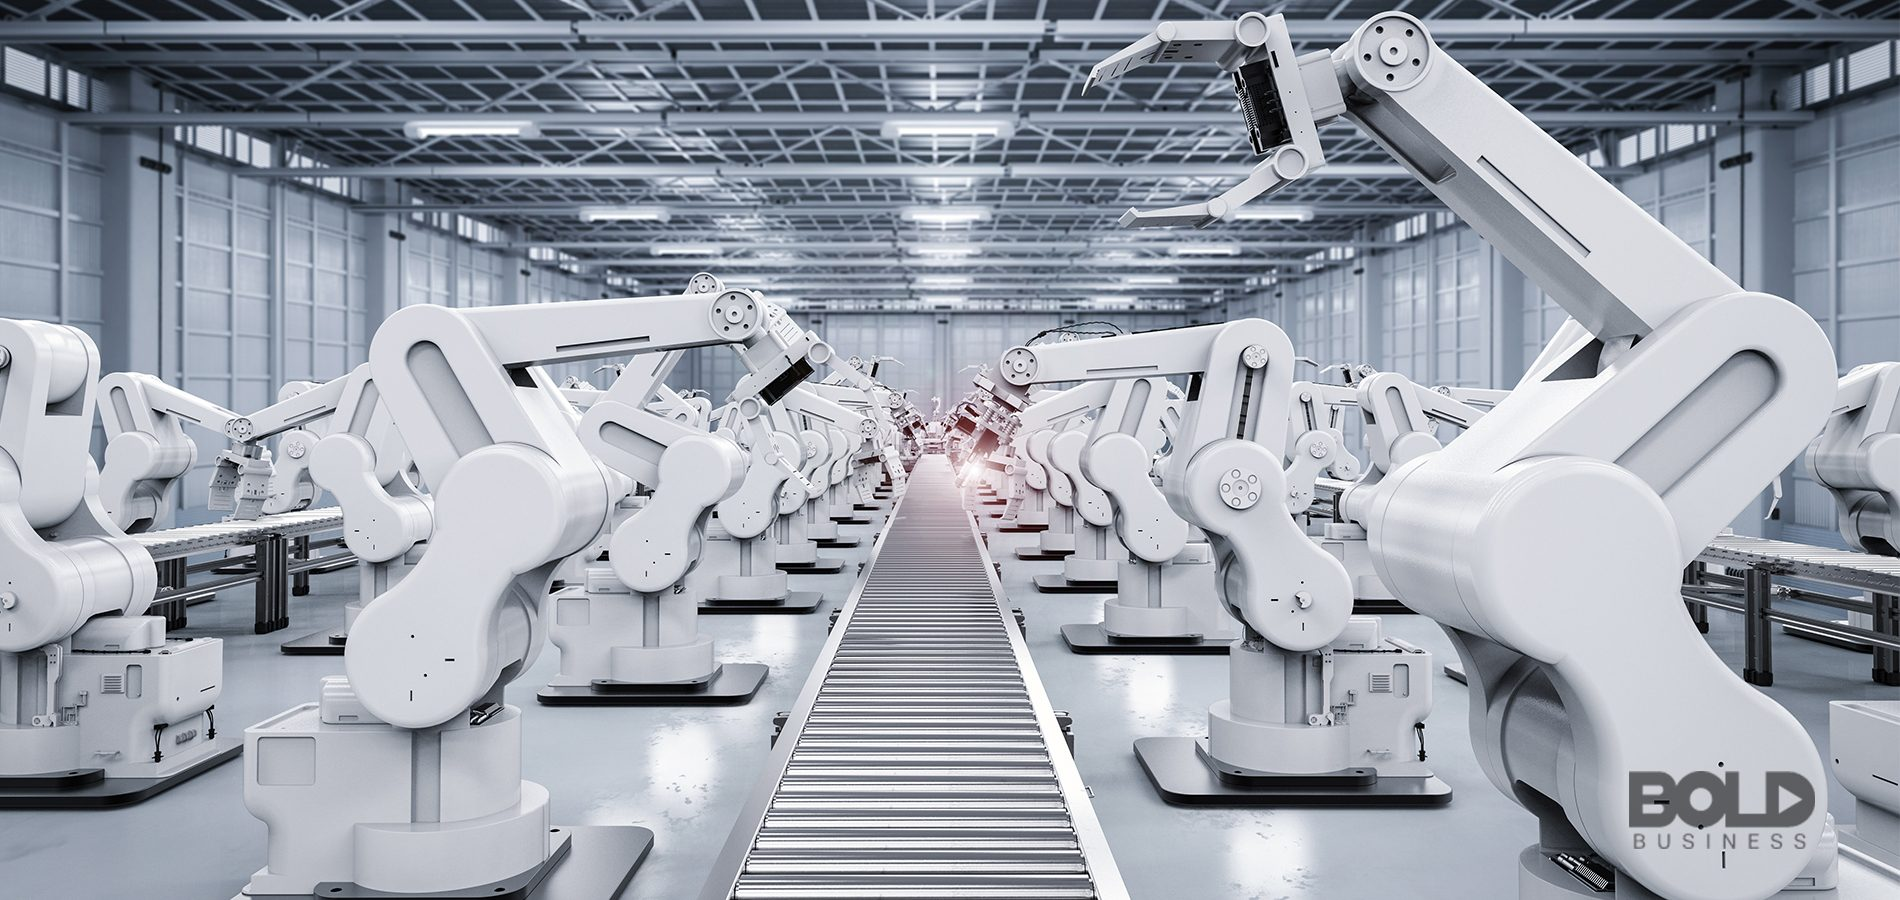 A robotic assembly line ready to assemble stuff